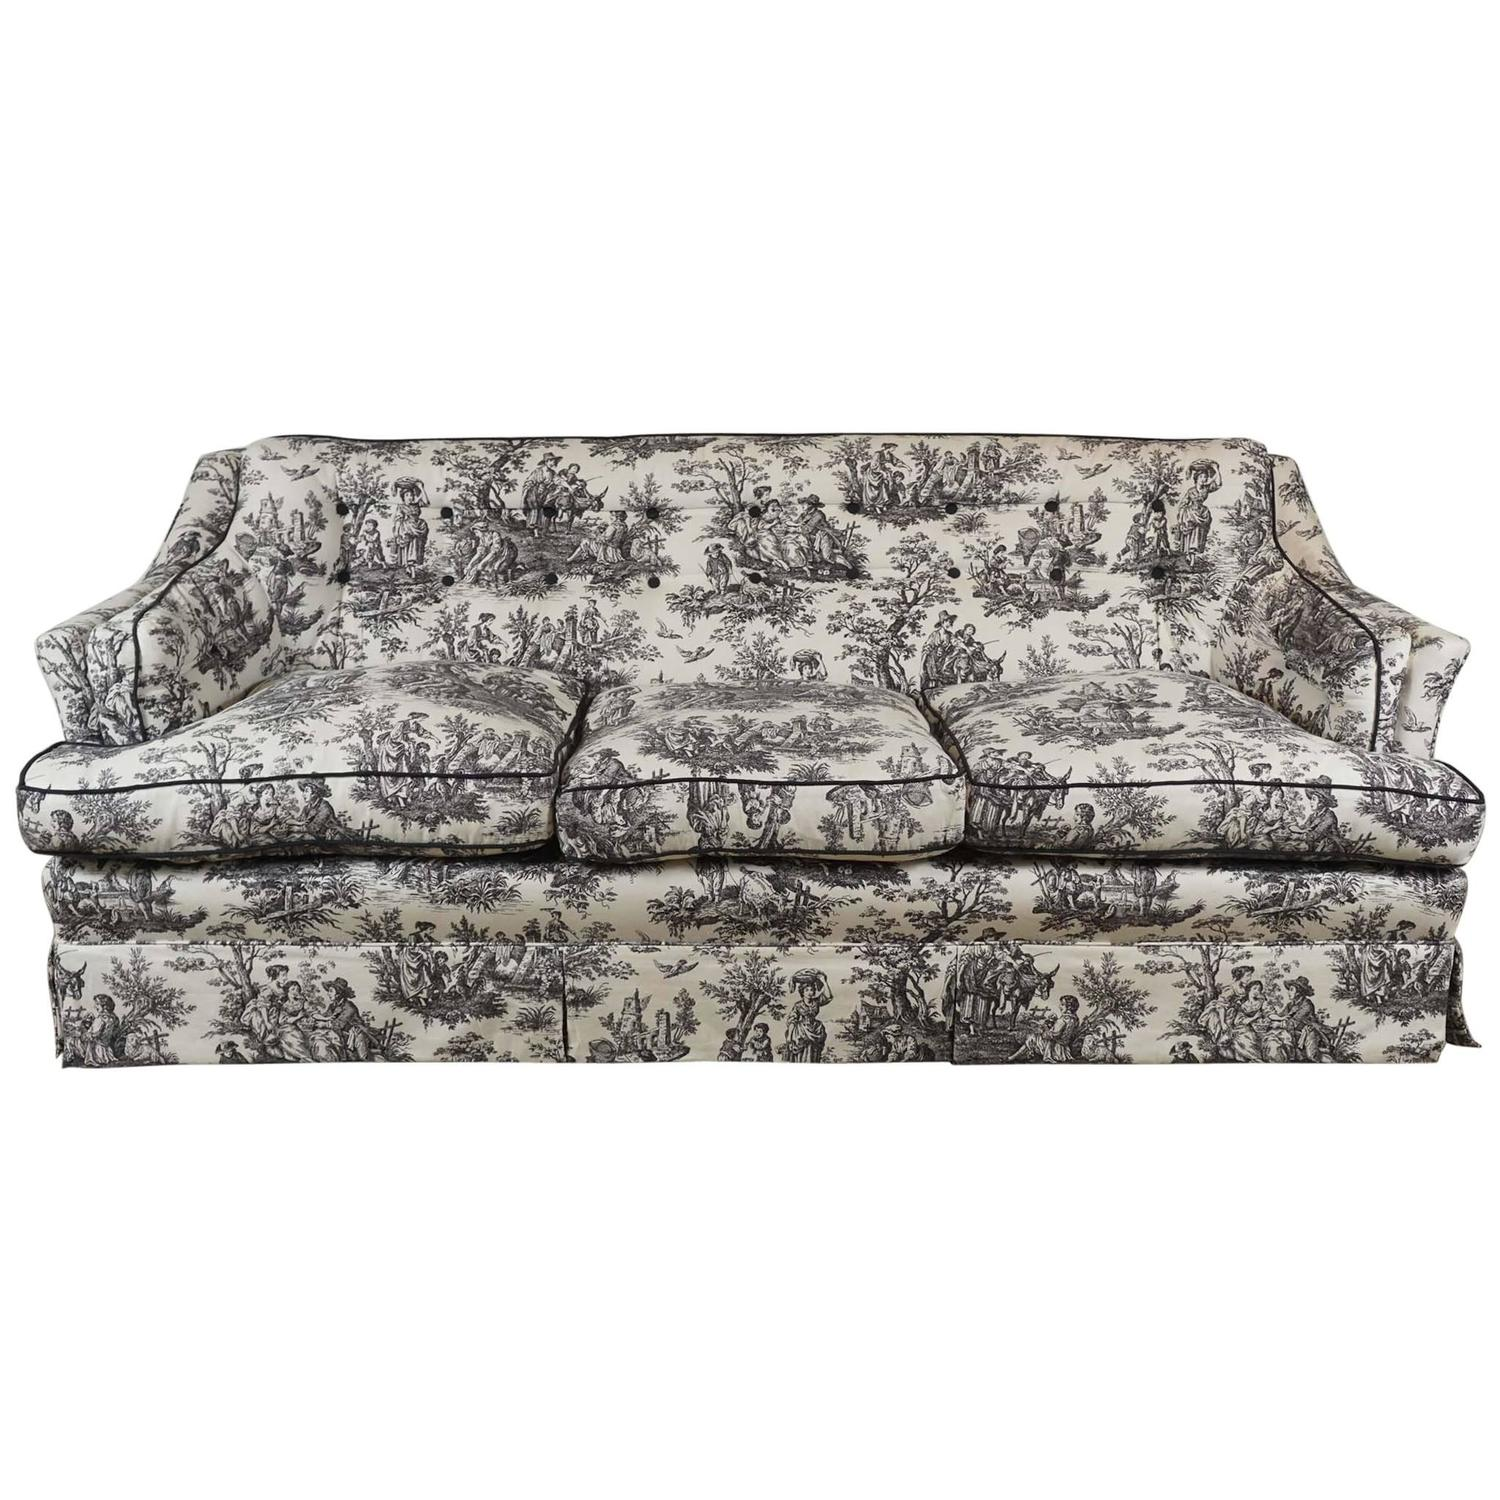 Black and White Toile Sofa at 1stdibs